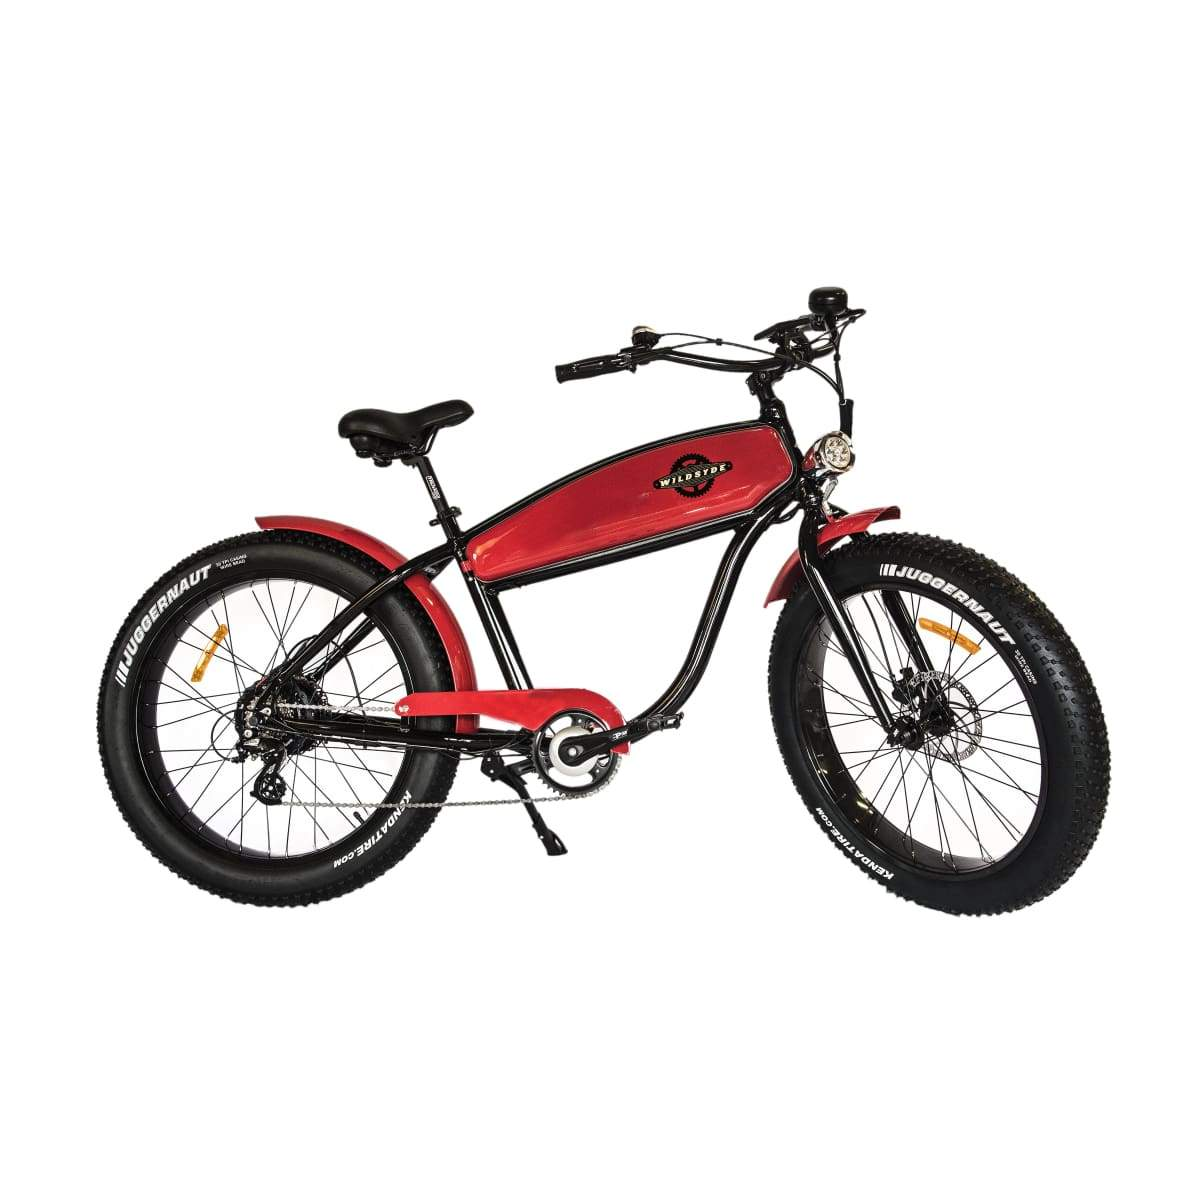 Electric Cruiser Bike Wildsyde The Beast 500W 36V (Pre-Order) - Black/red - Electric Bike $2999.95